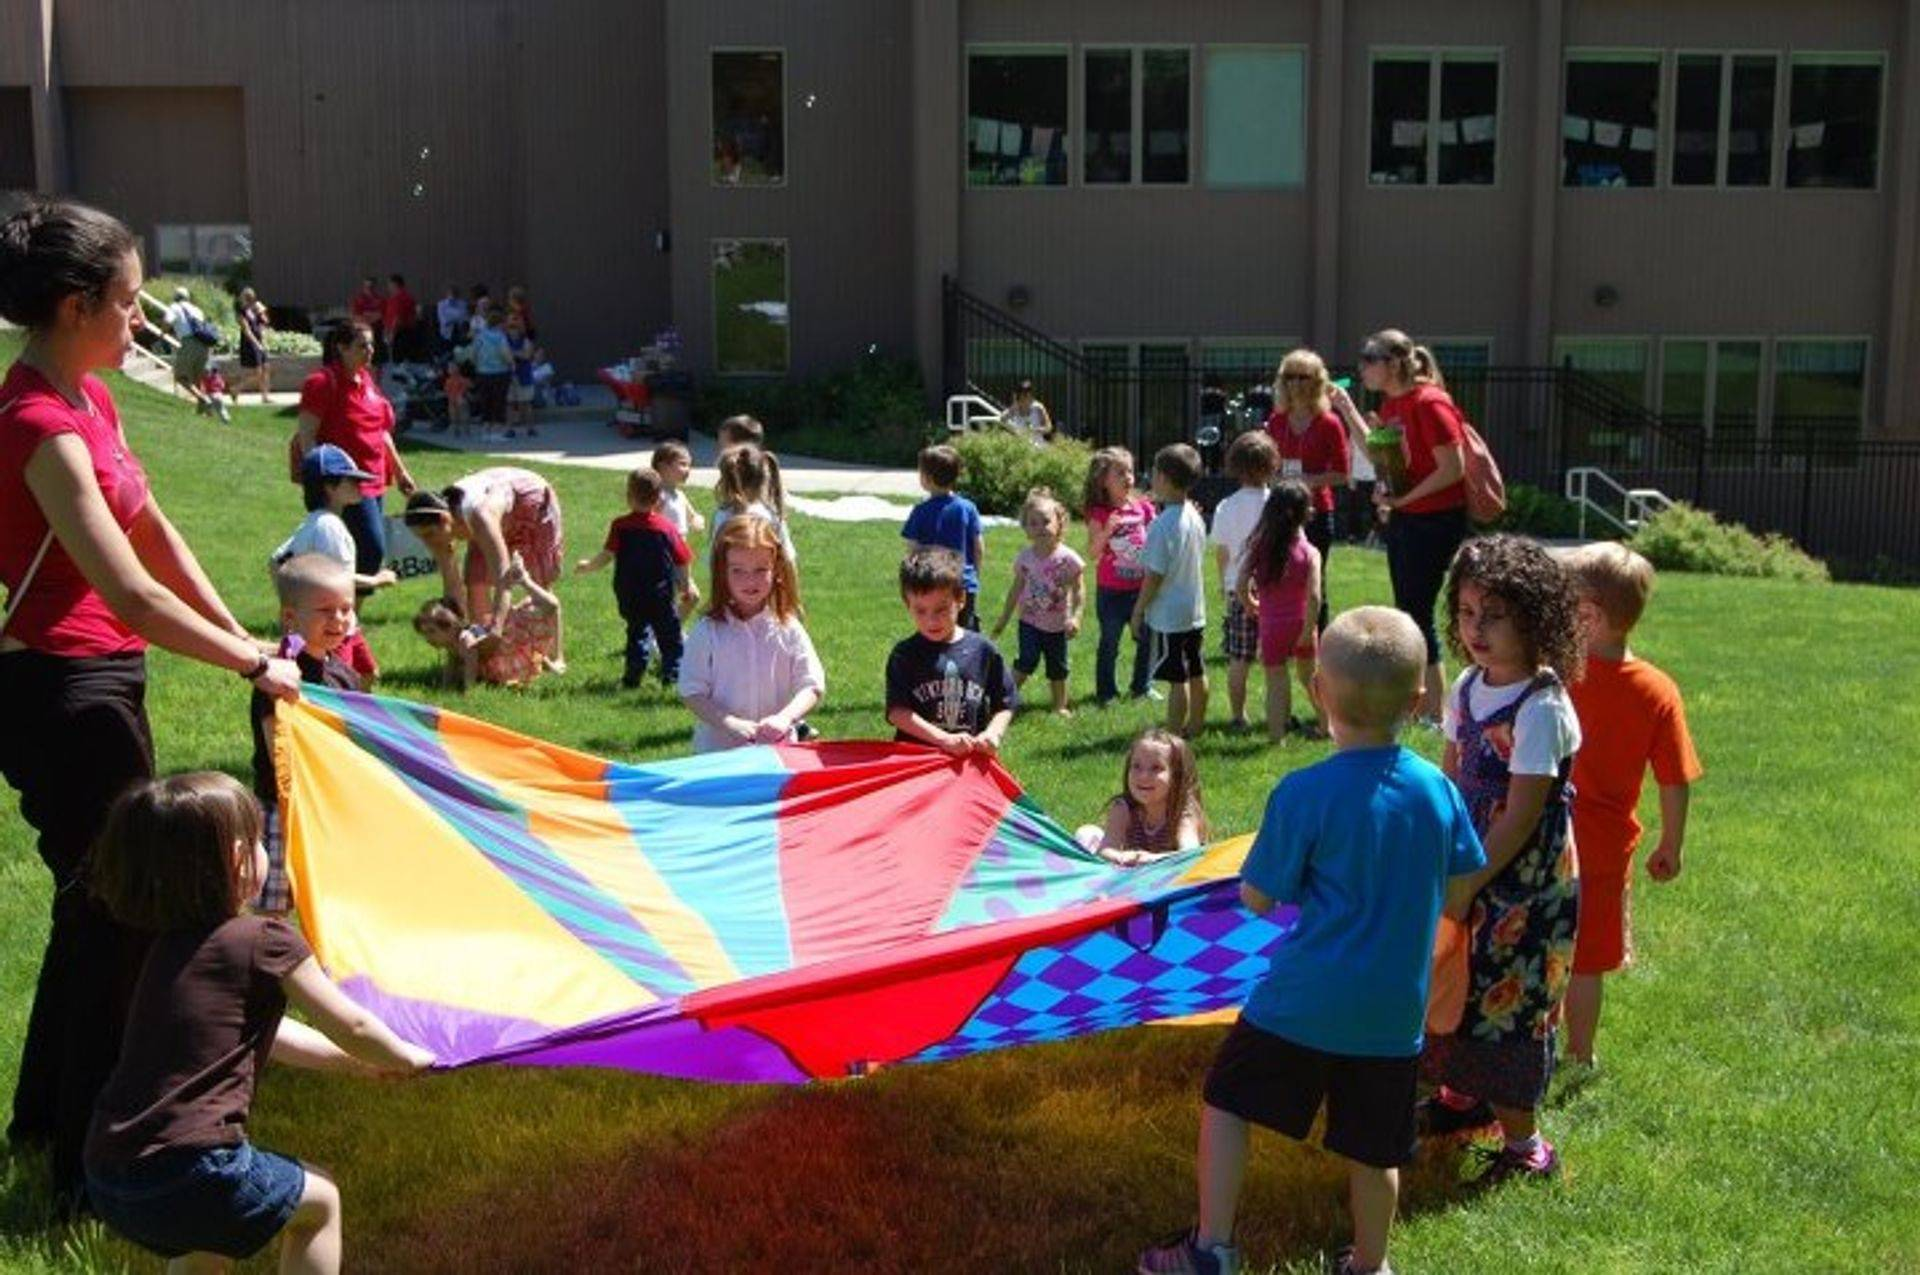 Early Childhood Center fun on the Great Lawn